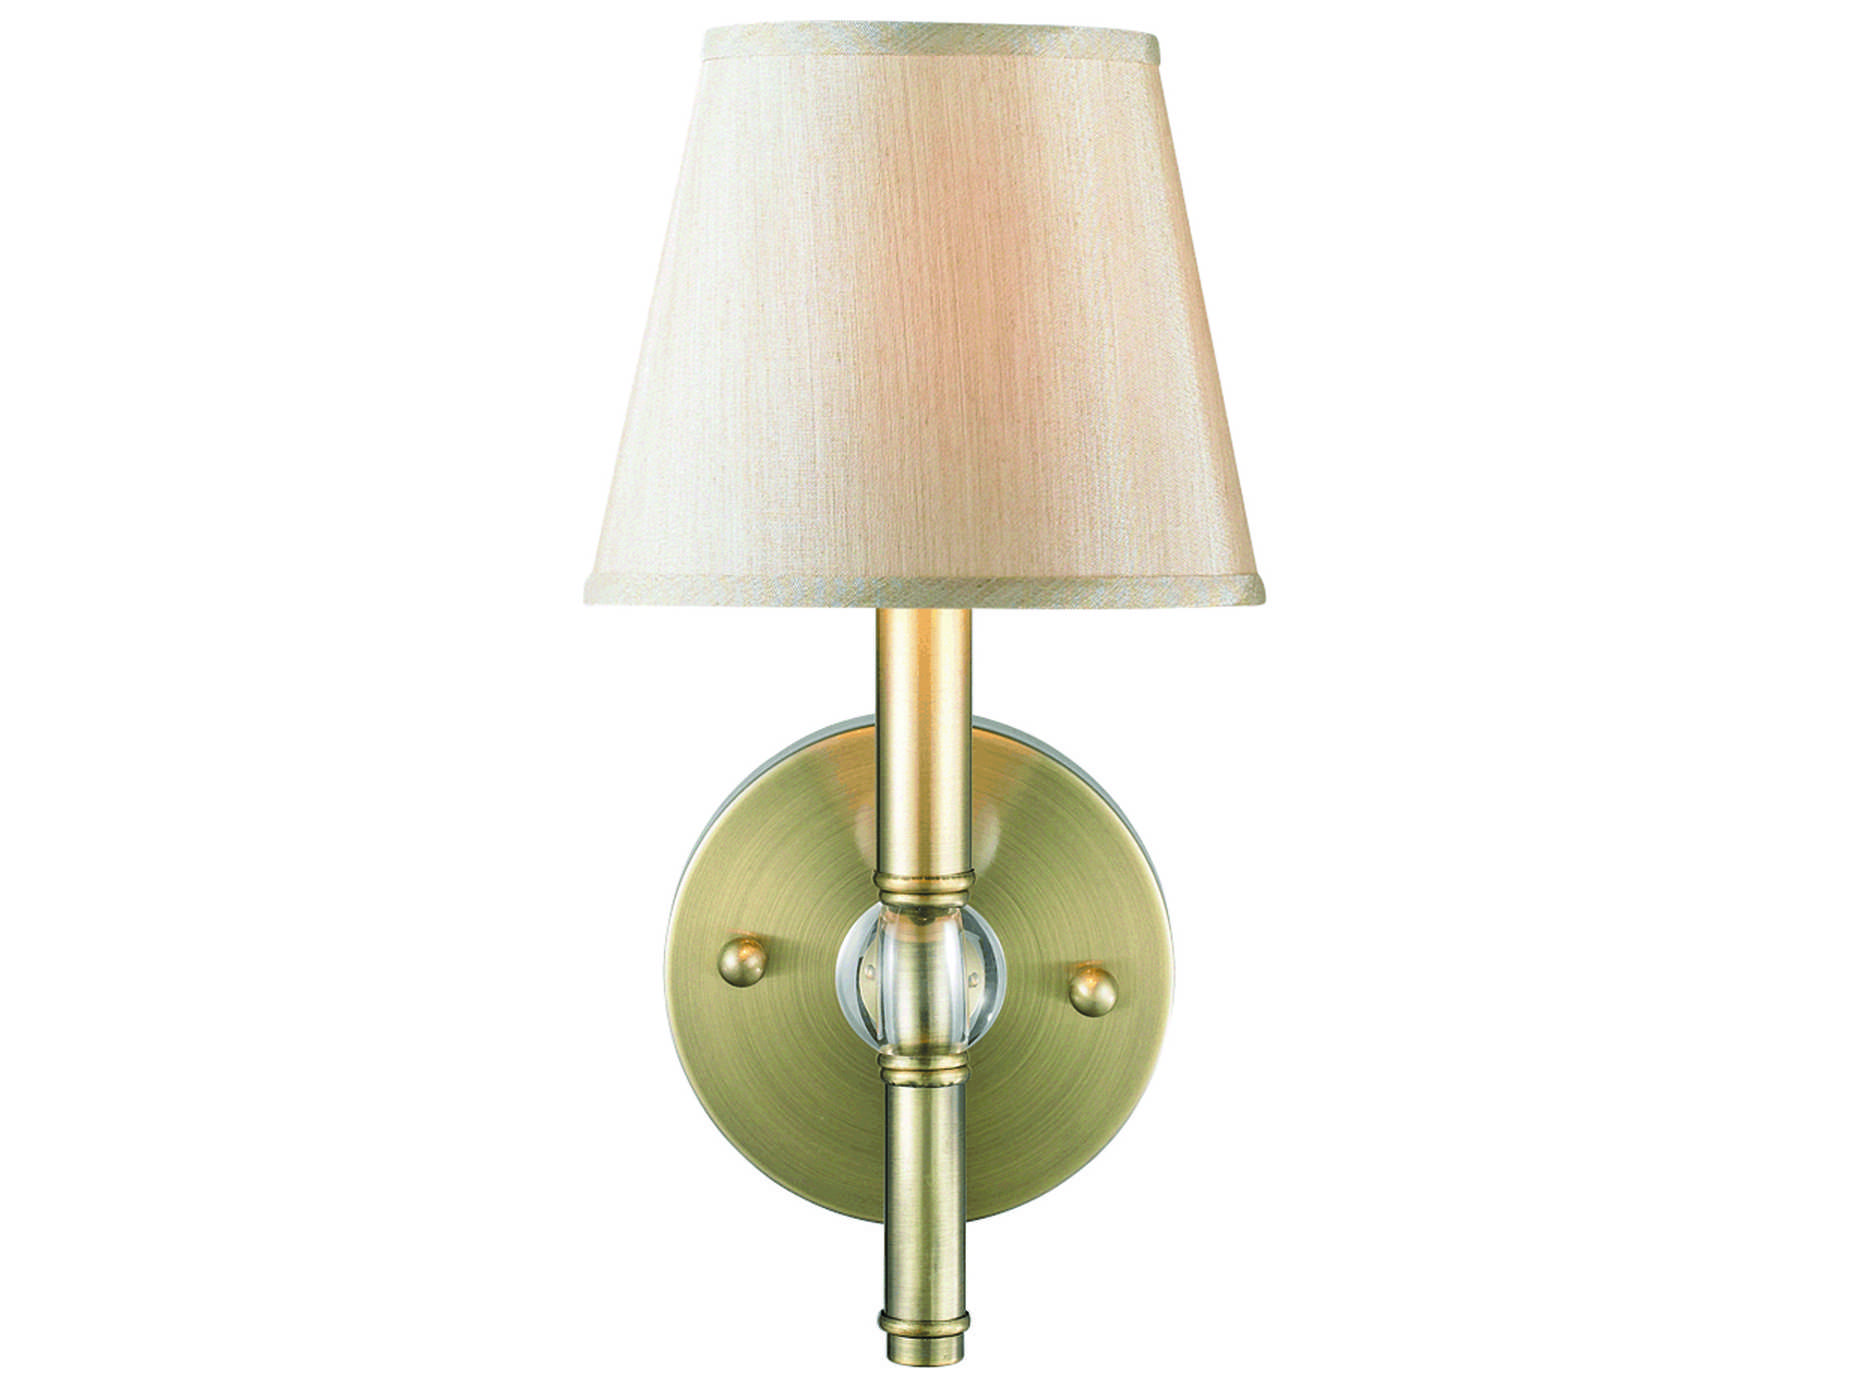 Golden Lighting Waverly Aged Brass Wall Sconce with Silken Parchment Shade GO35001WABPMT